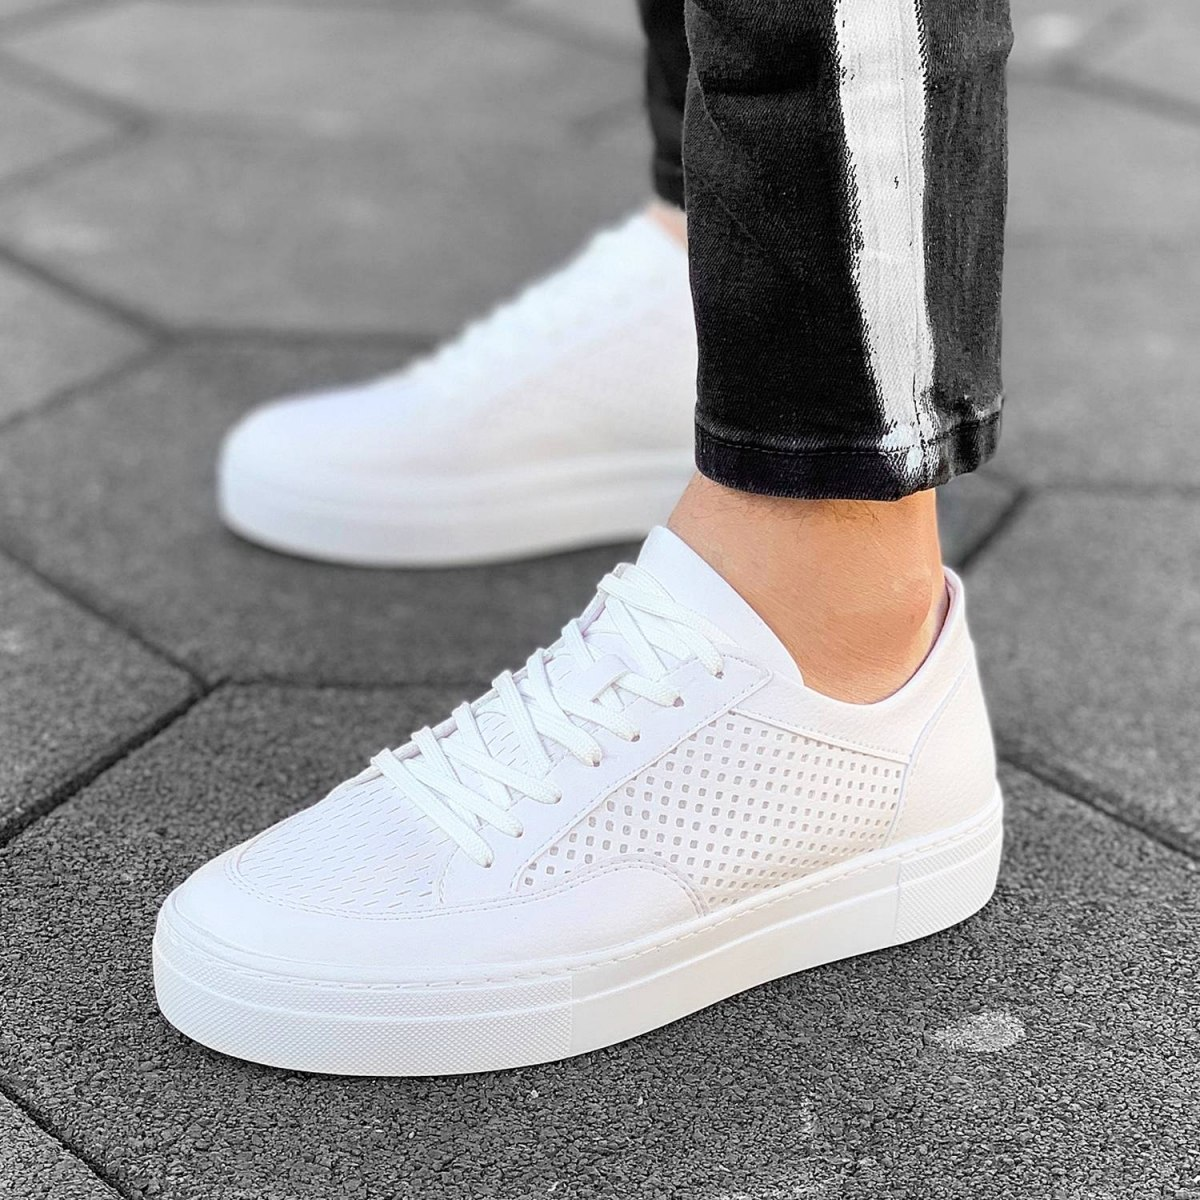 Plexus Sneakers in Full White